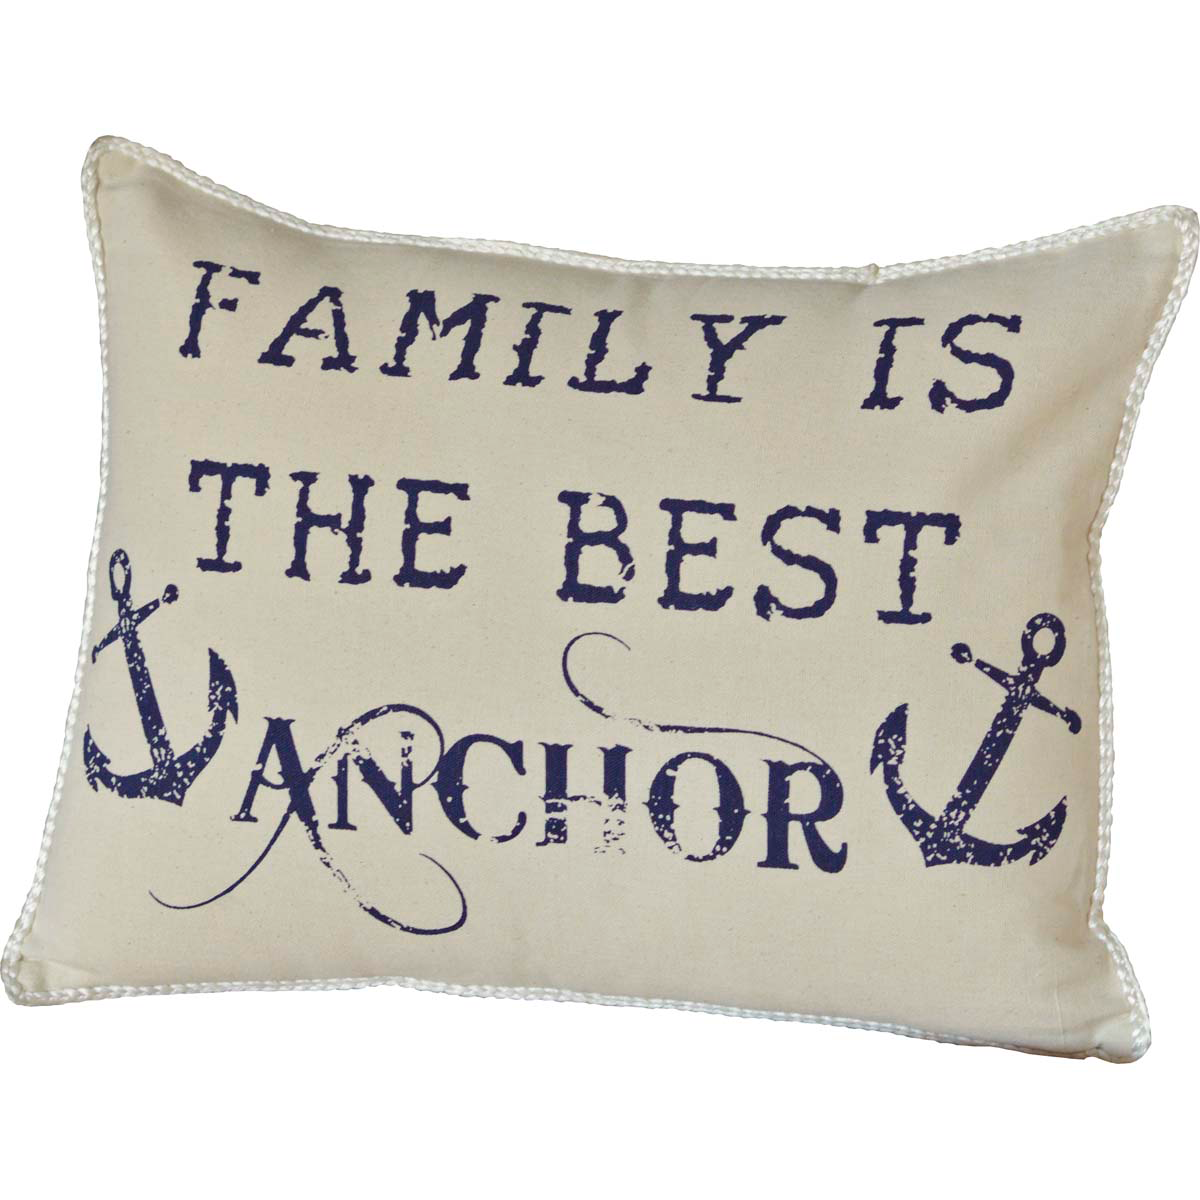 "Family Anchor Pillow - 14""x18"" - VHC Brands - Country Farmhouse Style/Nautical"